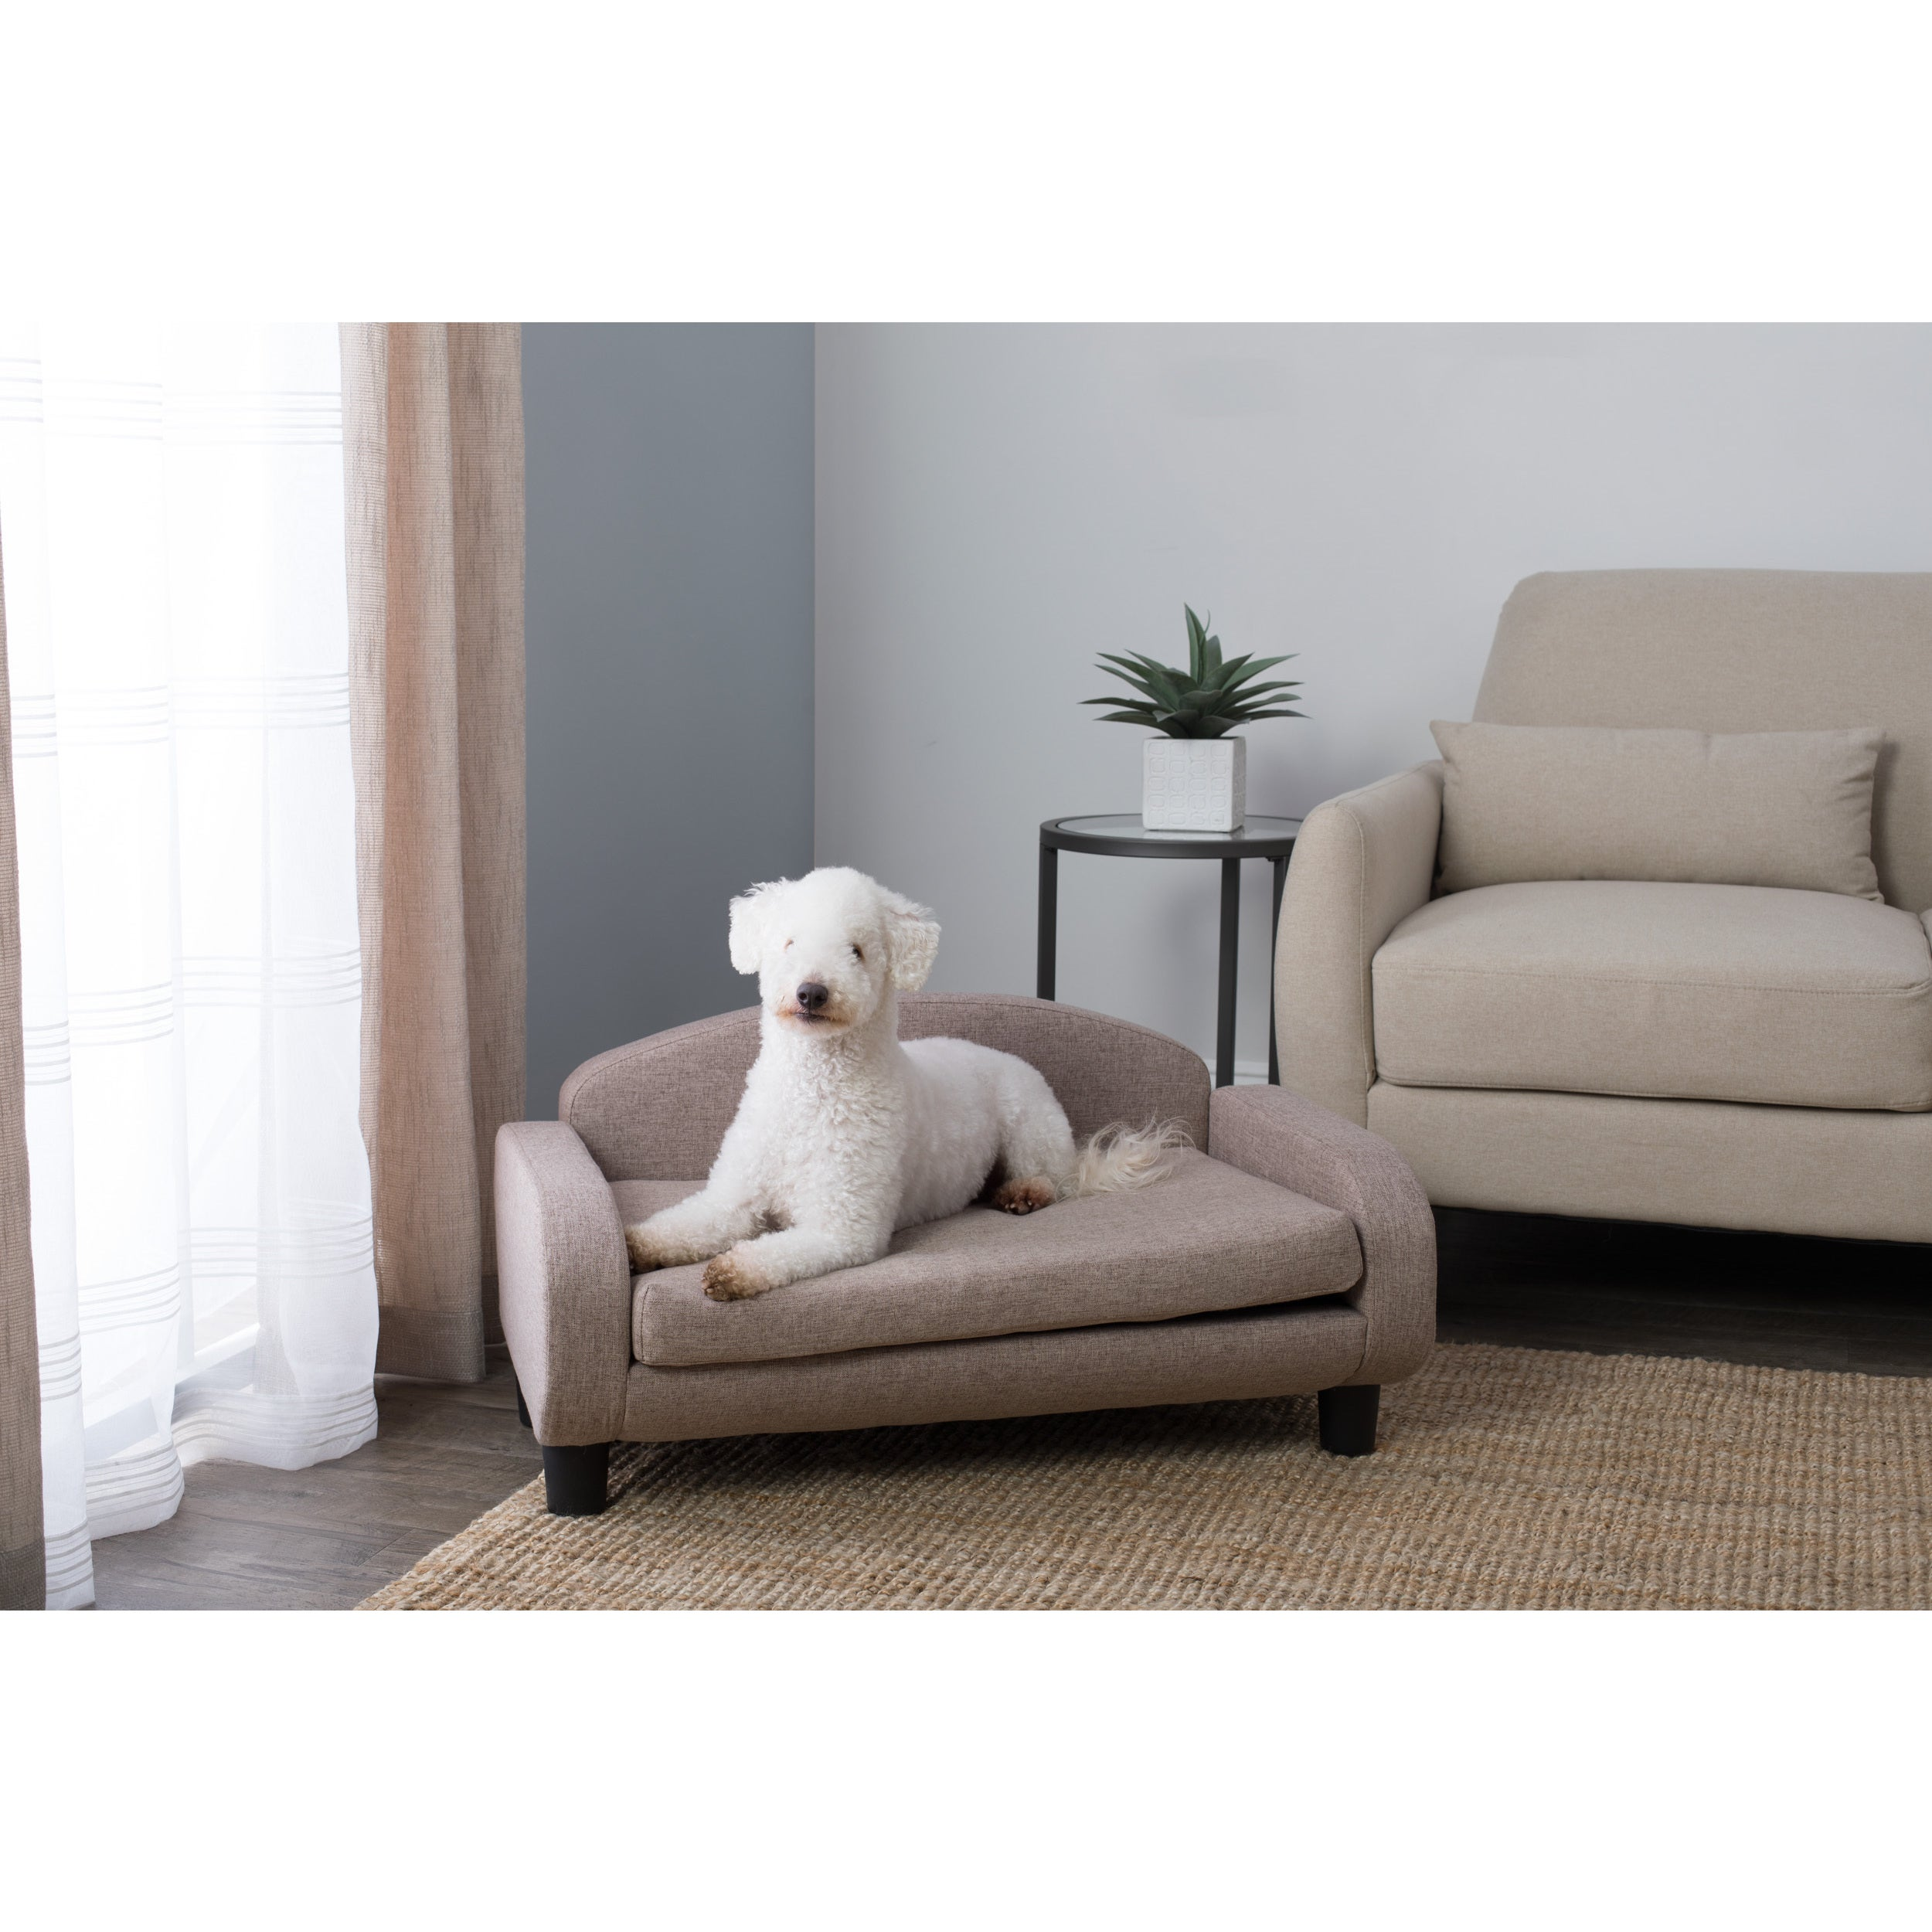 Studio Designs Paws Purs Pet Sofa Bed Free Shipping Today 15050314